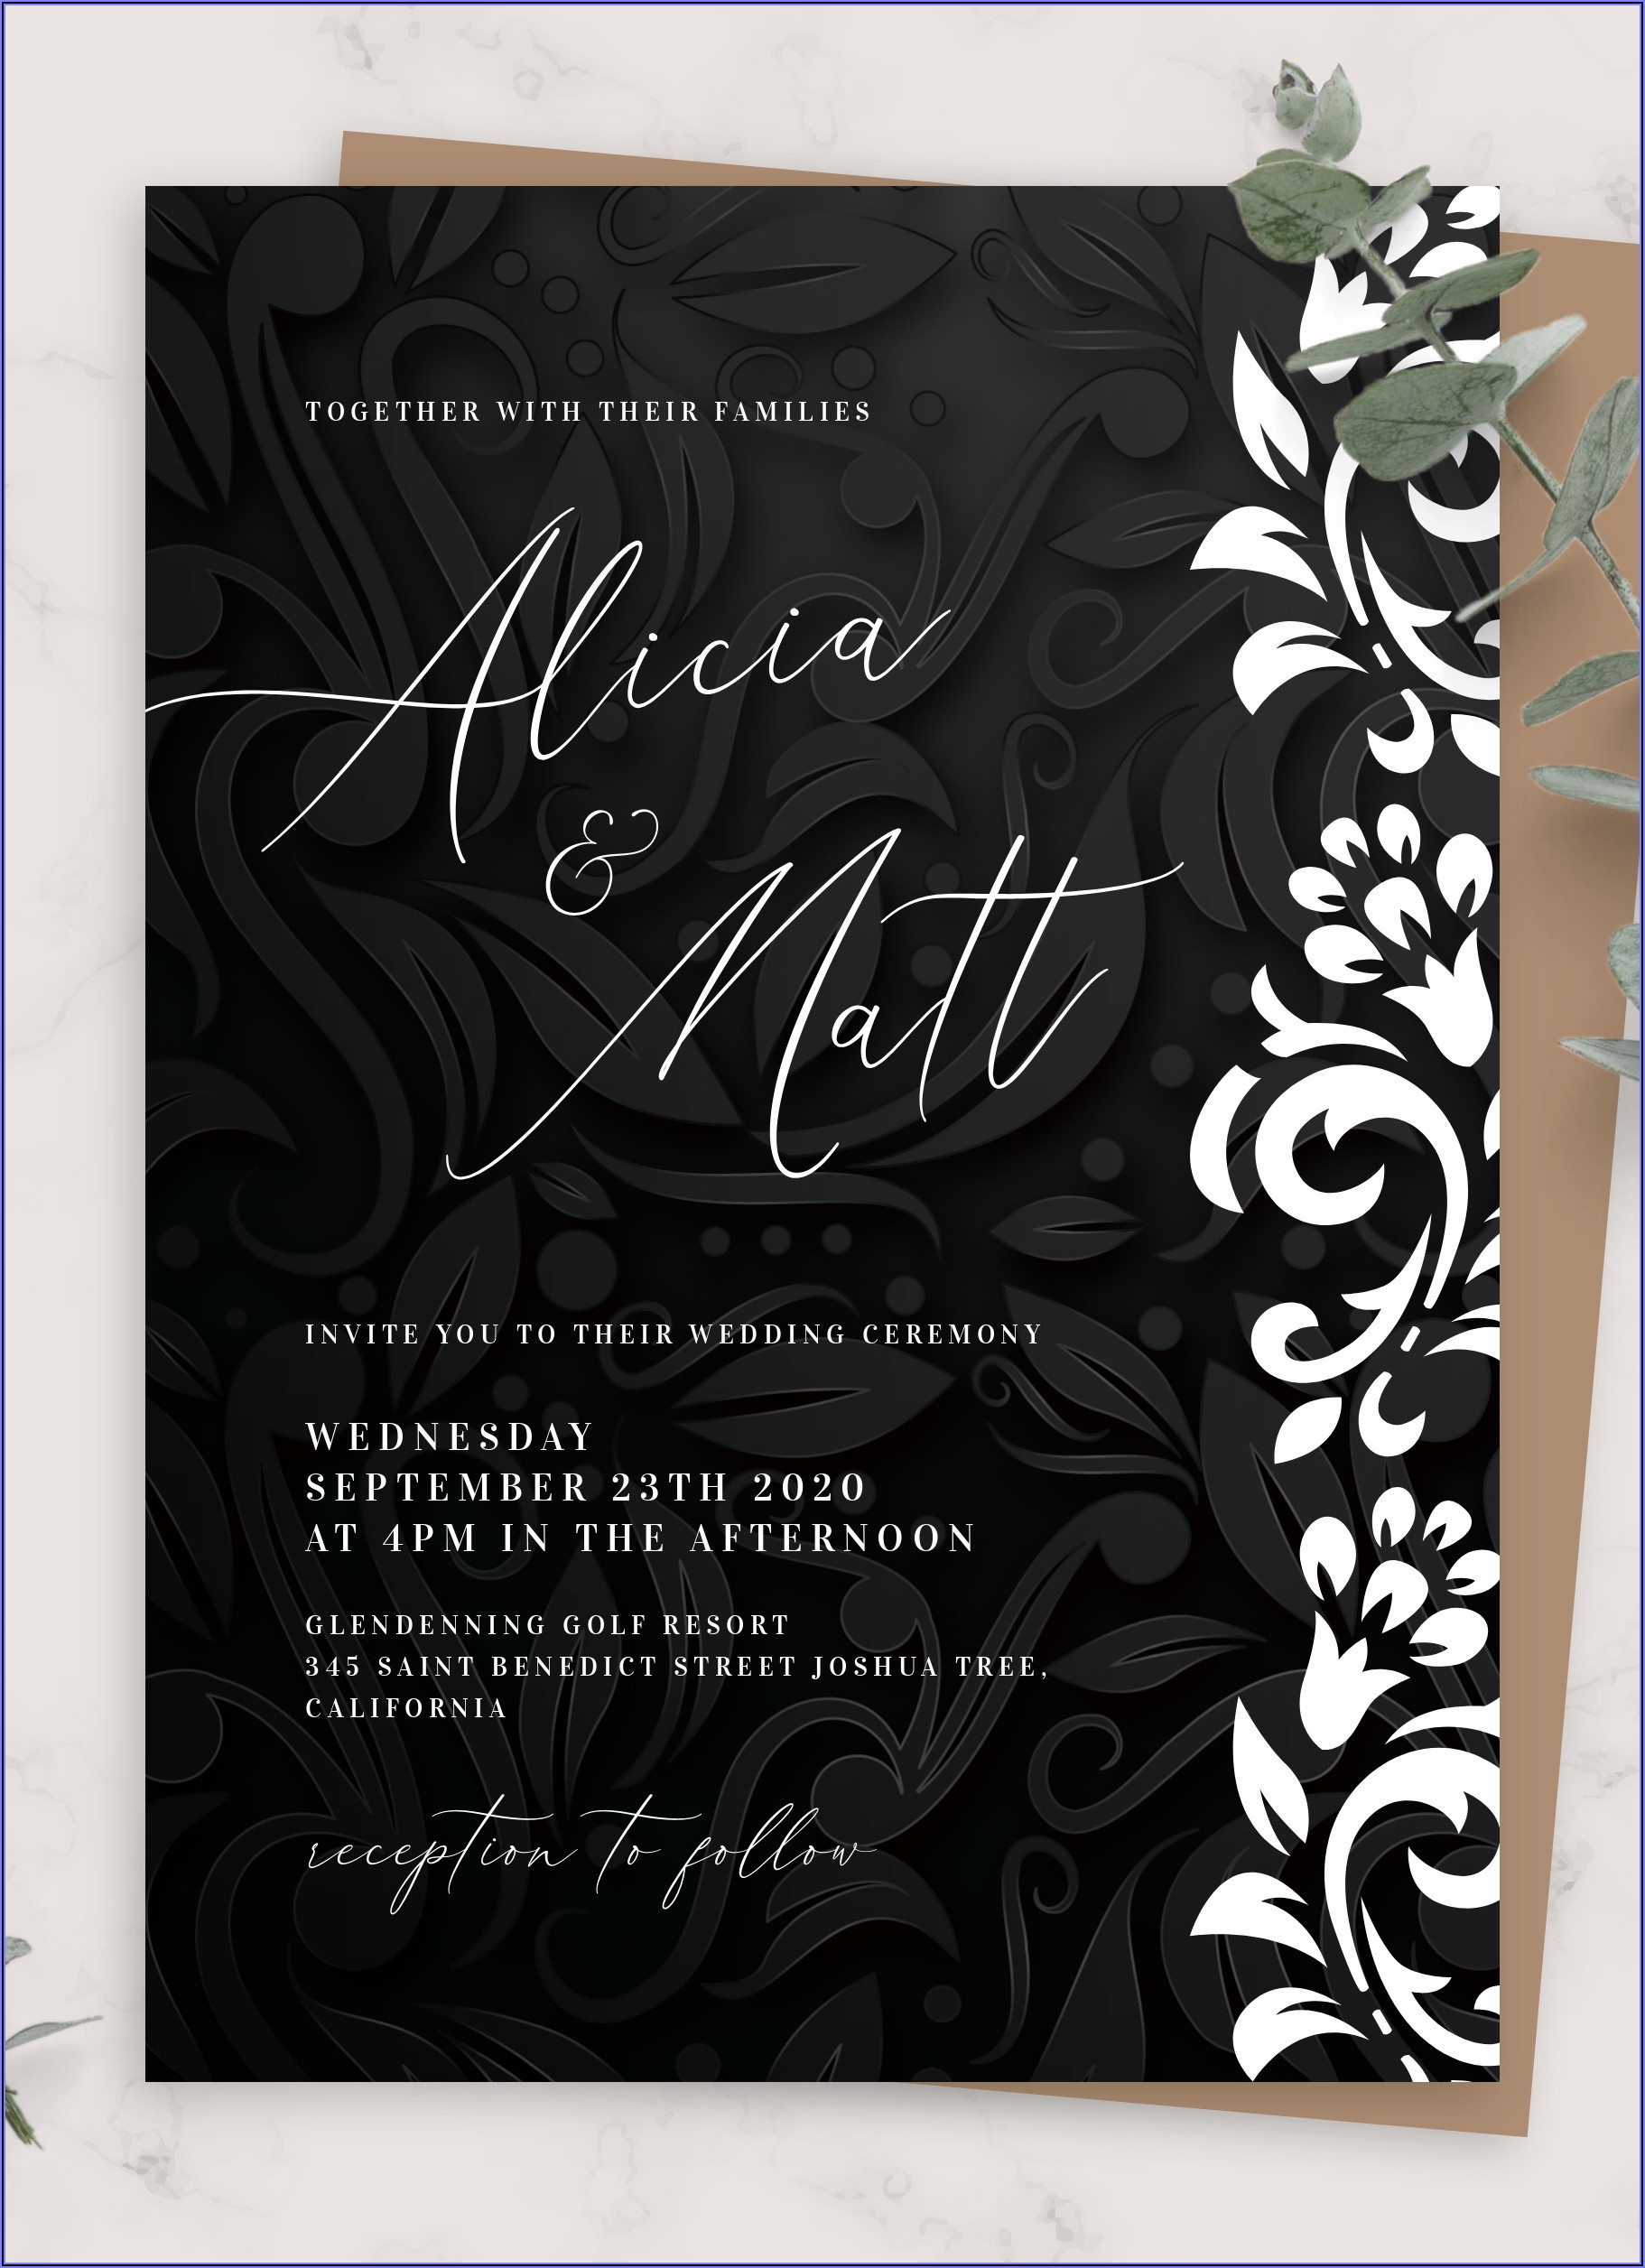 Wedding Invitation Background Black And White